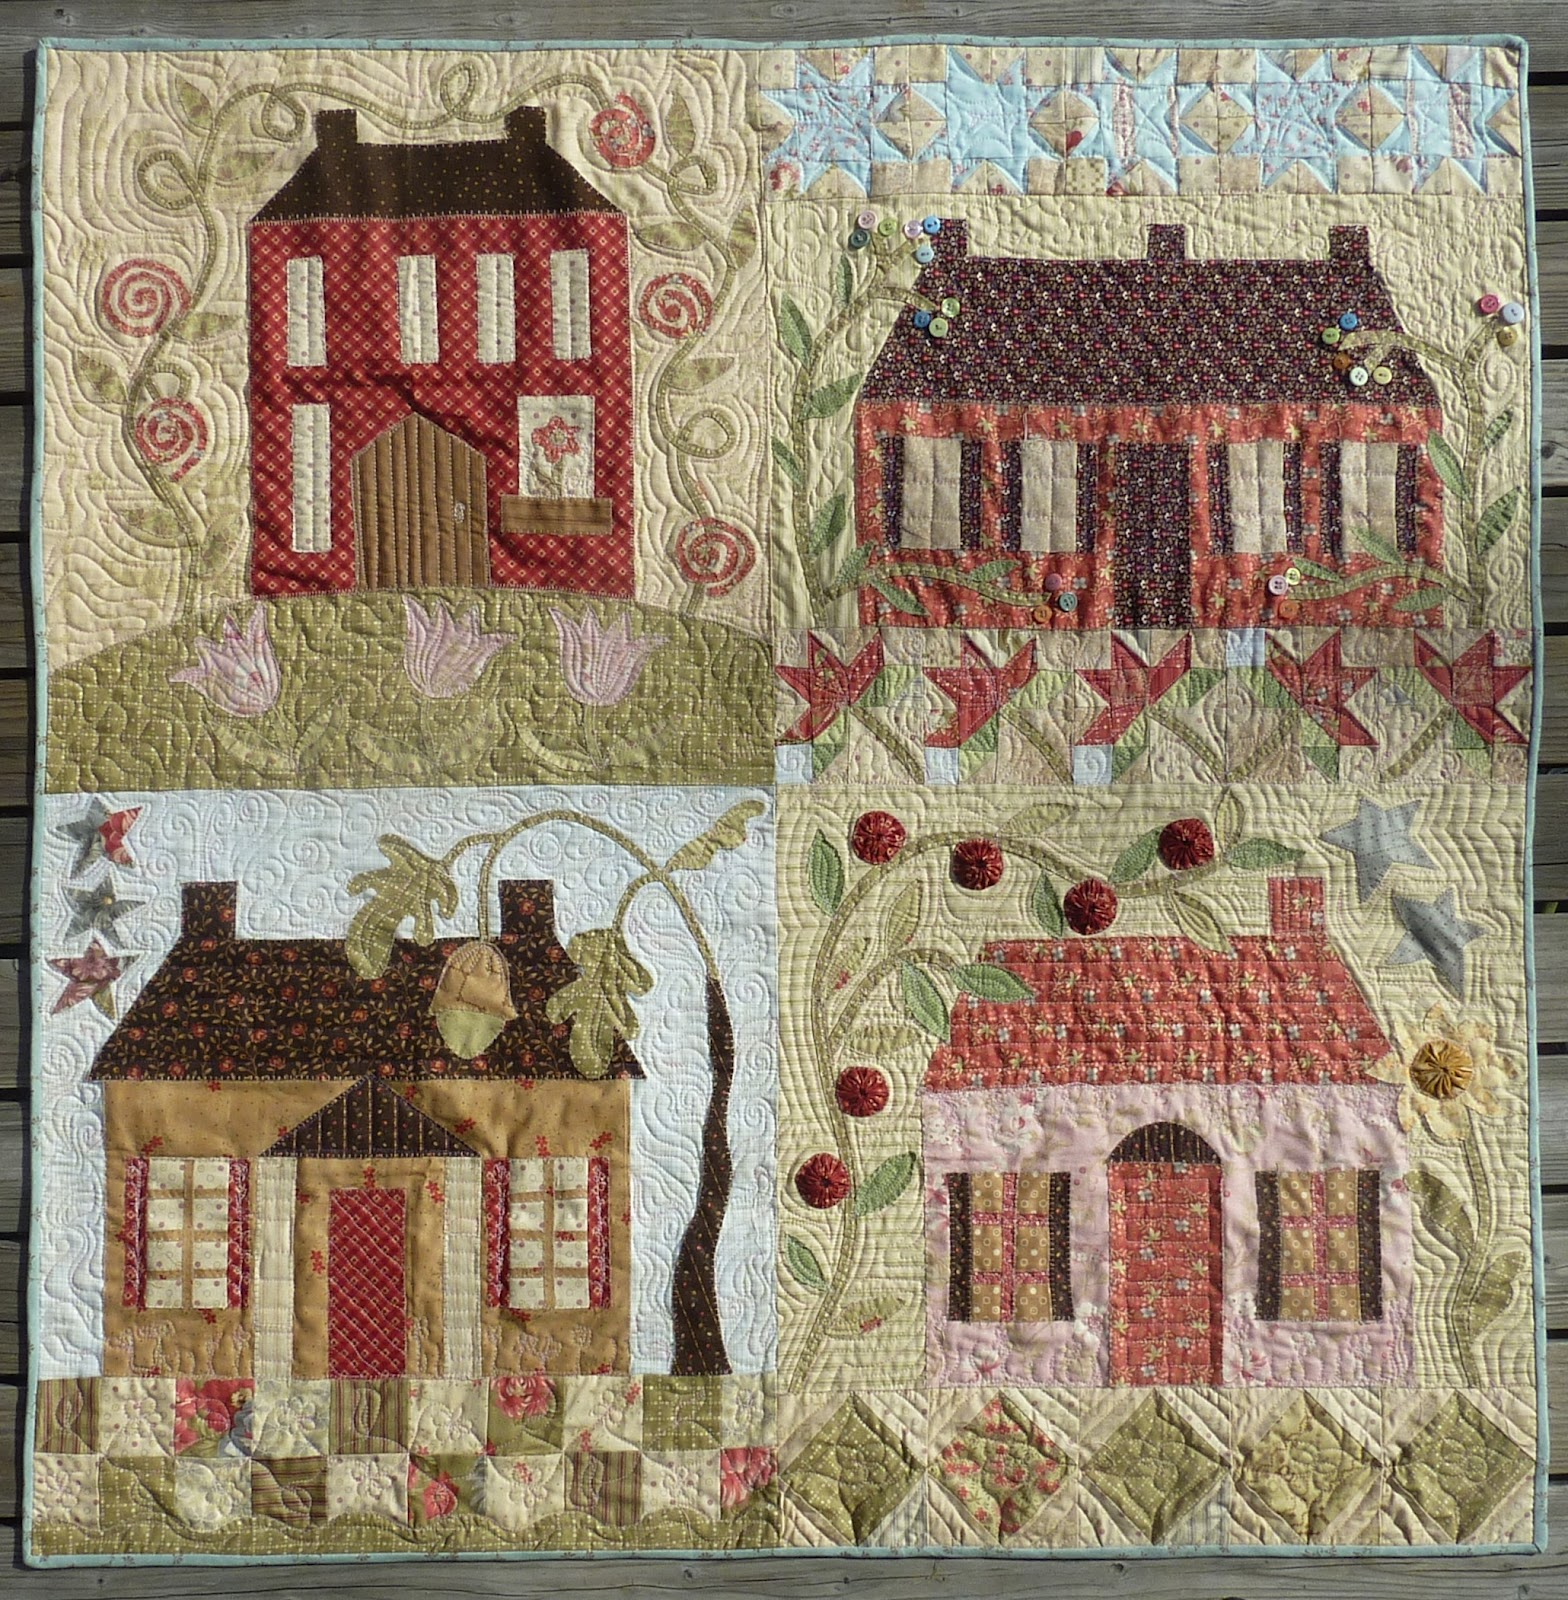 The designs of French country quilts vary greatly, but often include a patchwork-style construction that combines many themes across a single piece of fabric. You will find floral designs, geometric patterns, shabby chic motifs, and more.